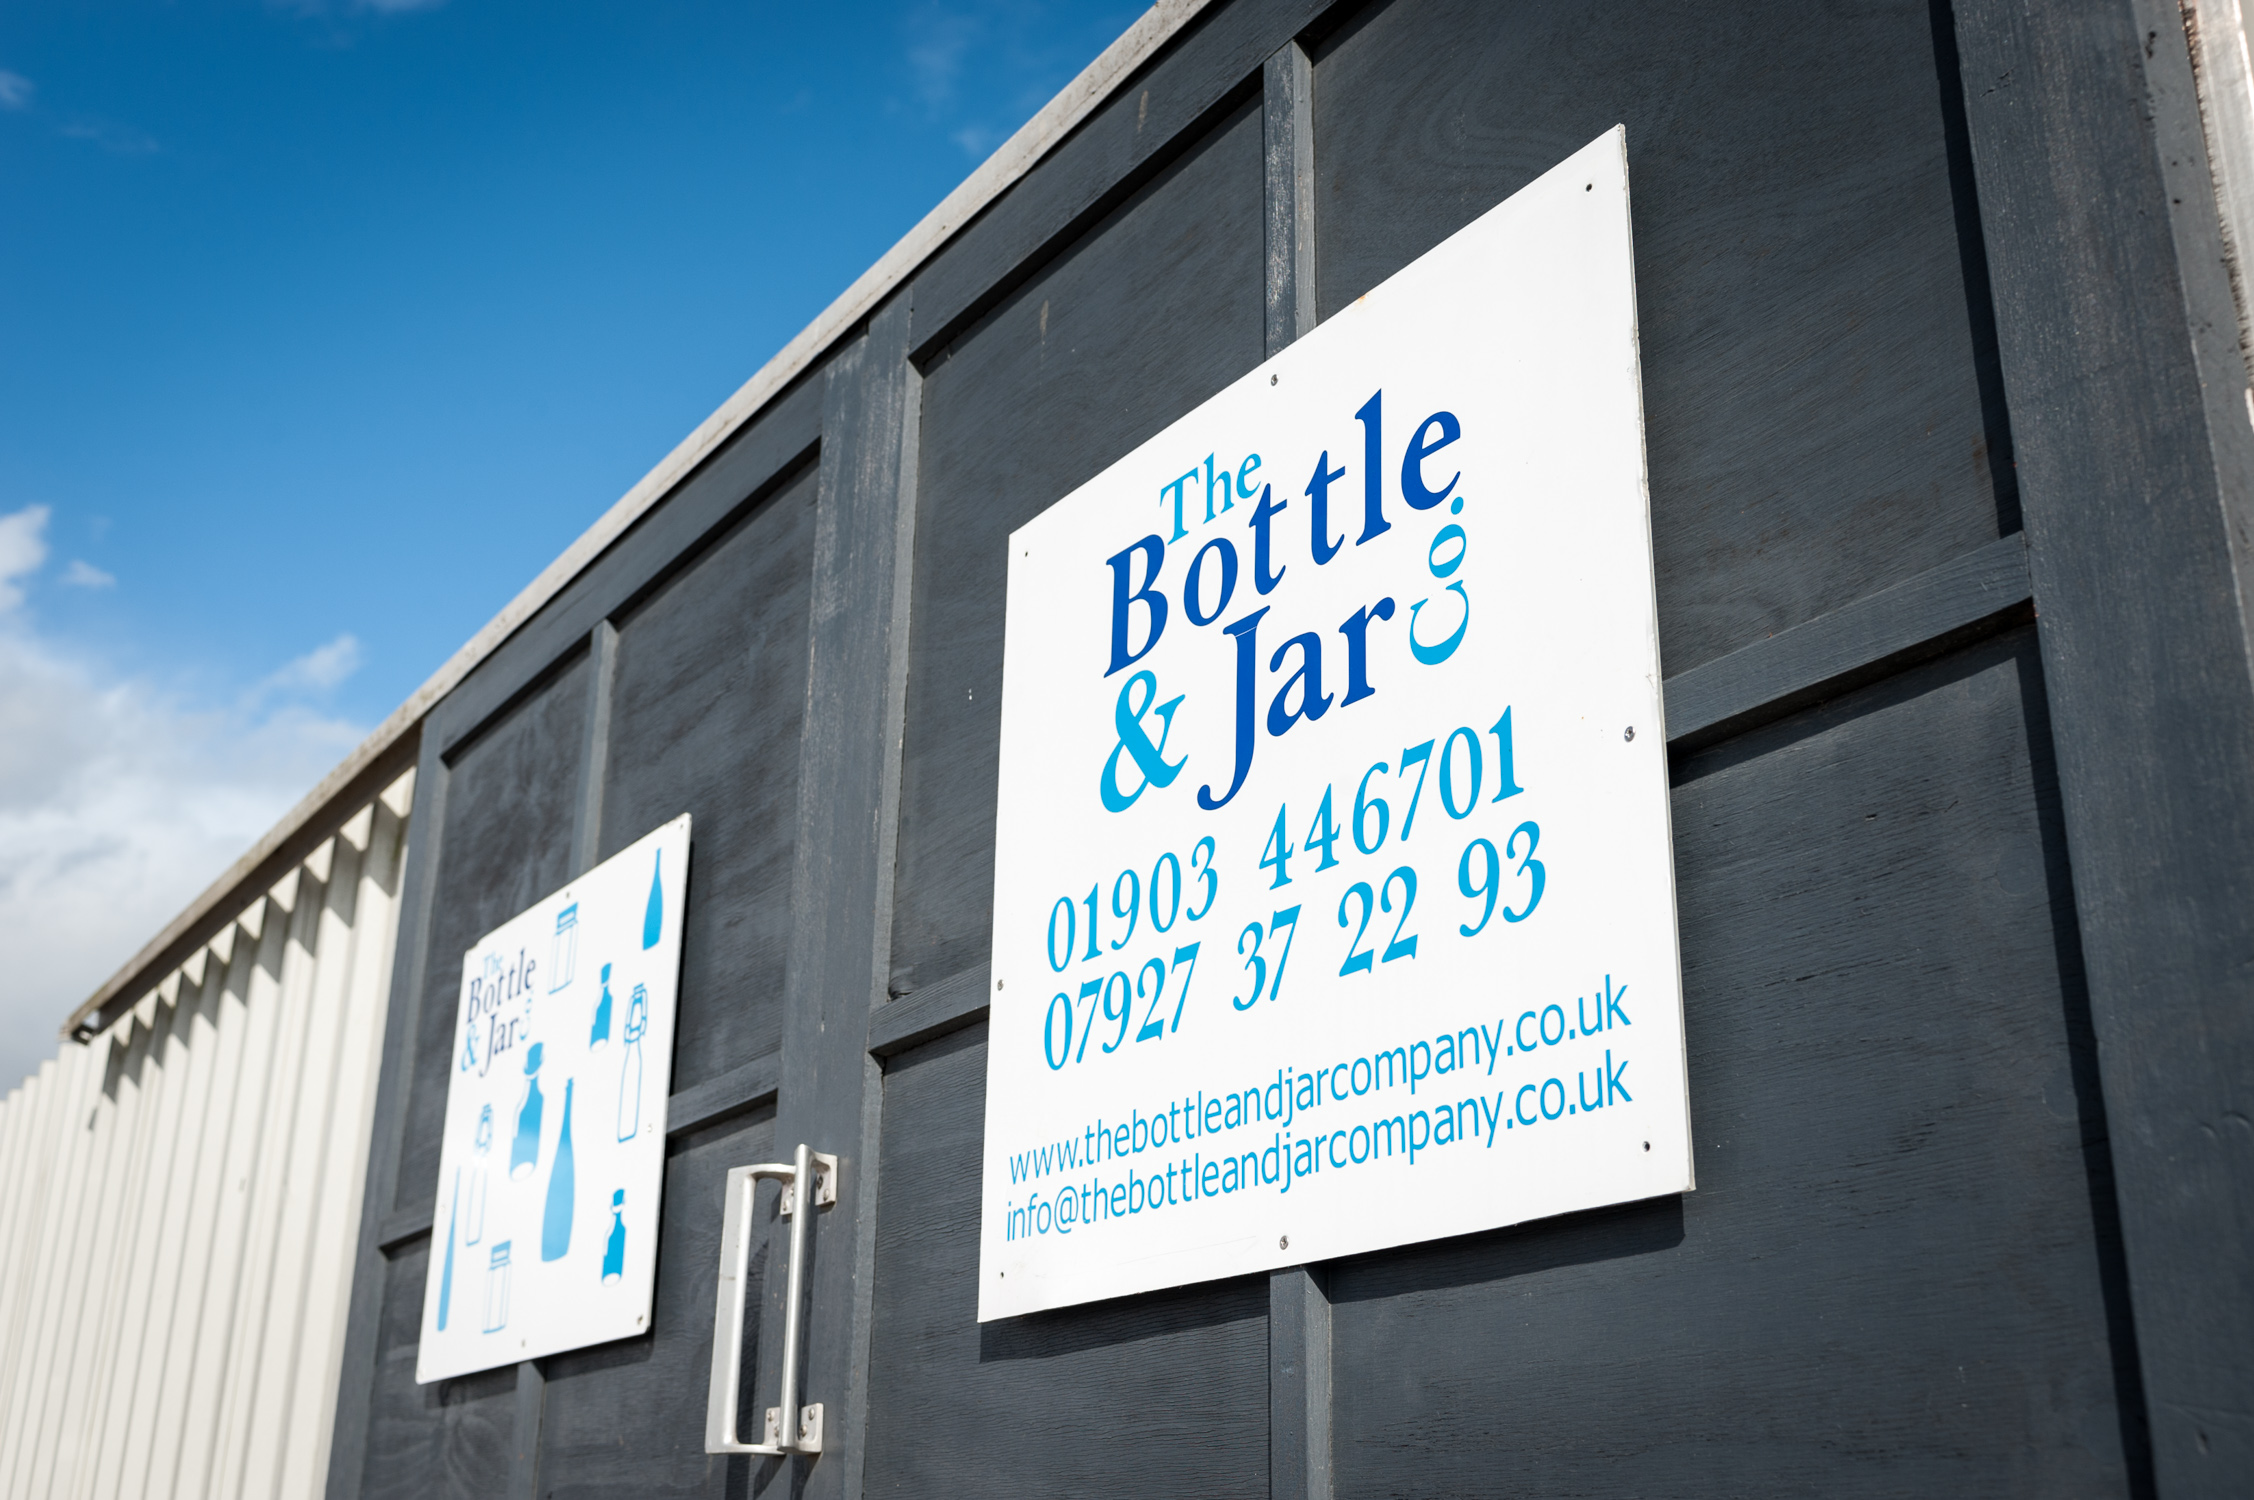 From their business premises in Wick, West Sussex,  The Bottle And Jar Company , fulfil and dispatch orders to their customers across the UK. Photo © Scott Ramsey  www.scottramsey.co.uk